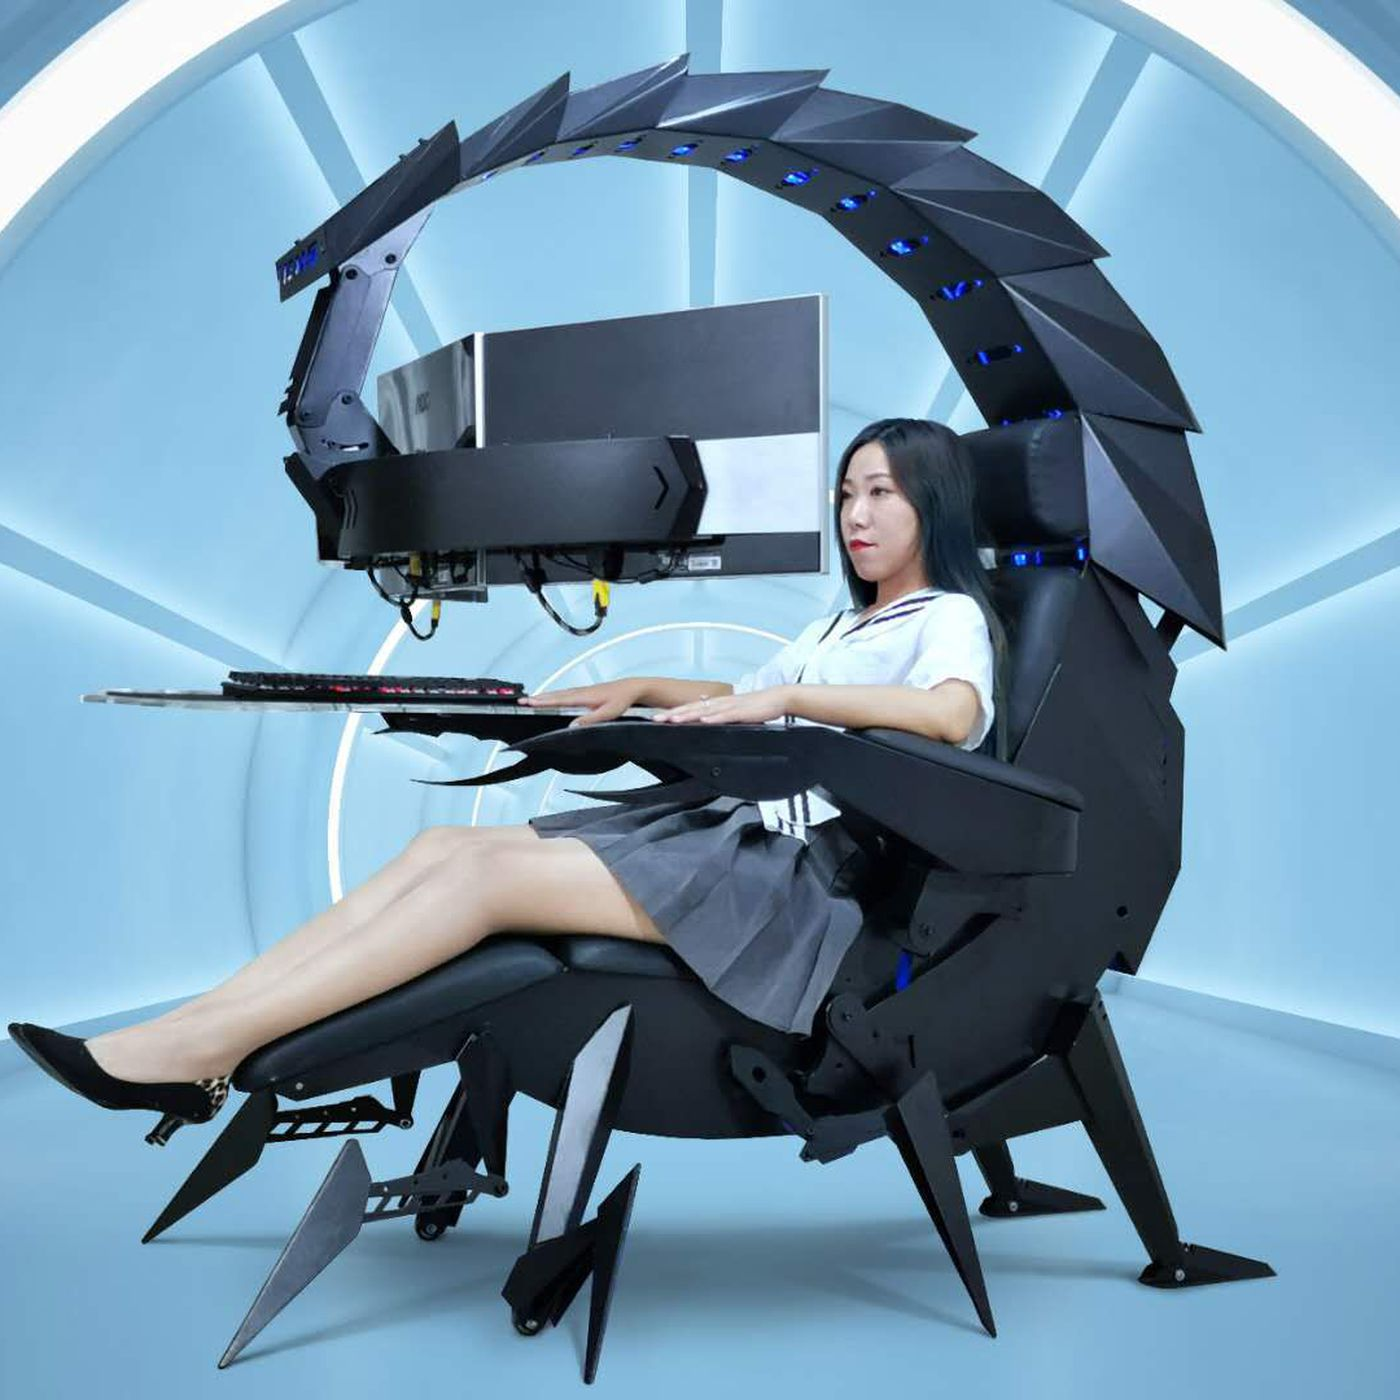 Nothing Says Ready To Game Quite Like Being Cocooned In A Giant Scorpion Cockpit The Verge